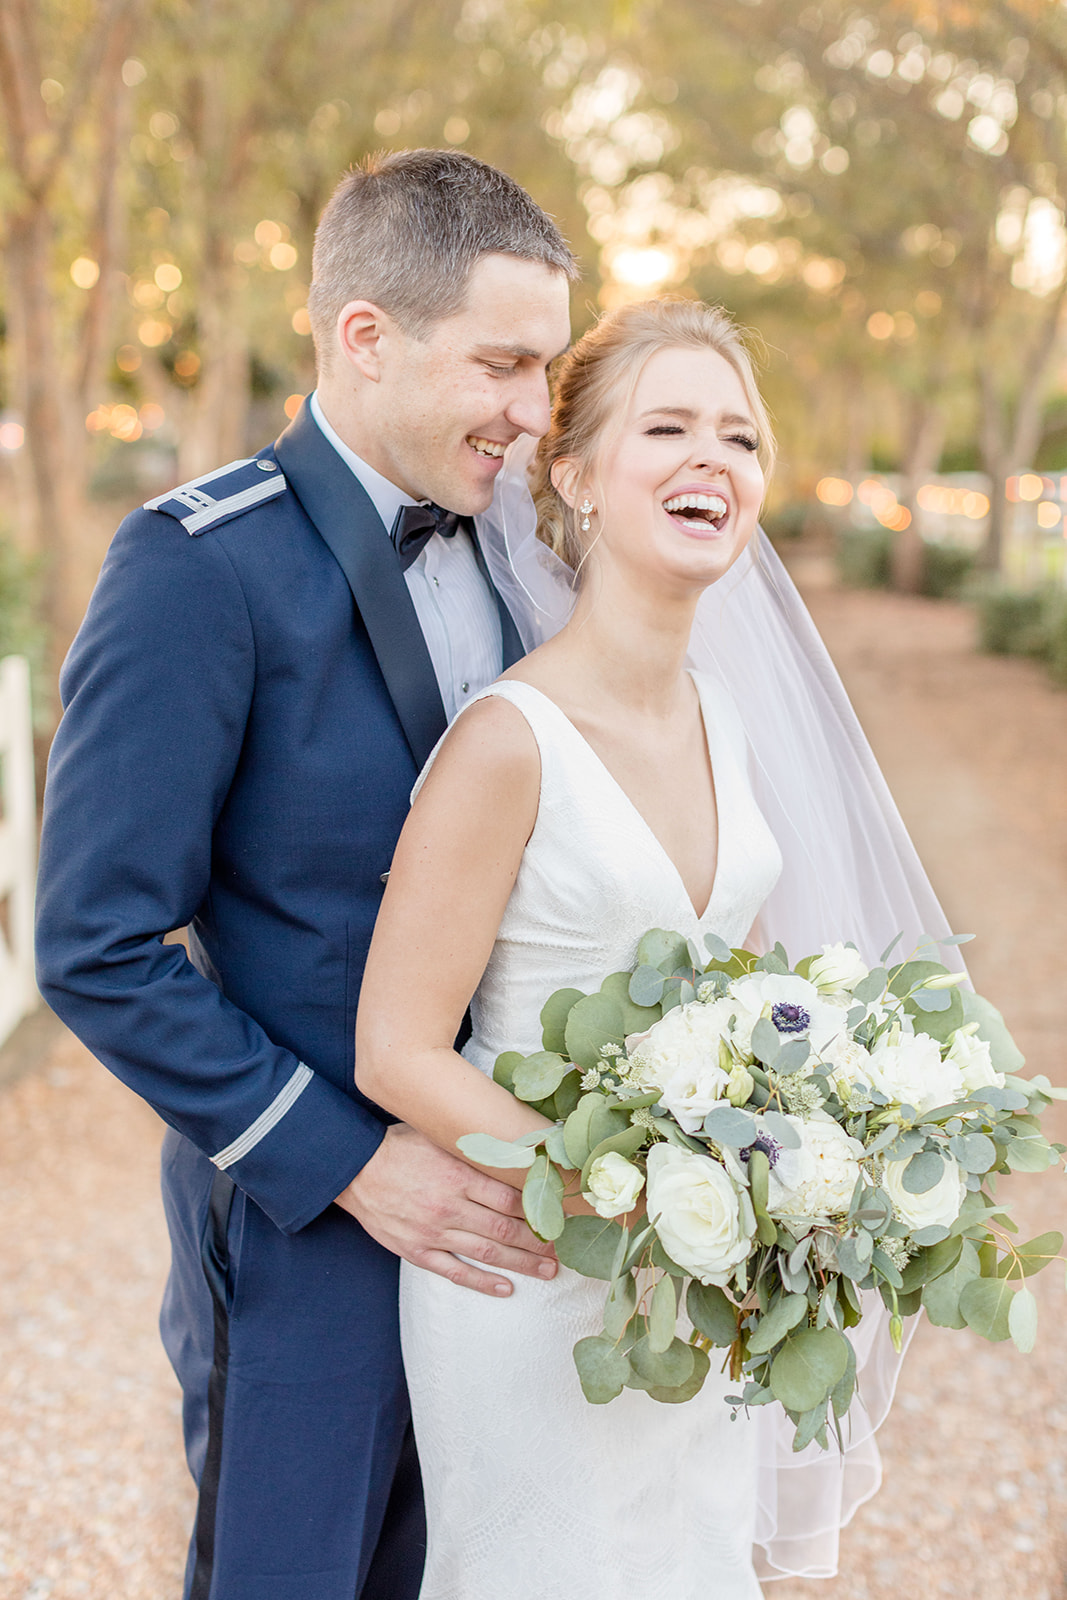 Intimate Wedding captured by Katie and Alec Photography featured on Nashville Bride Guide